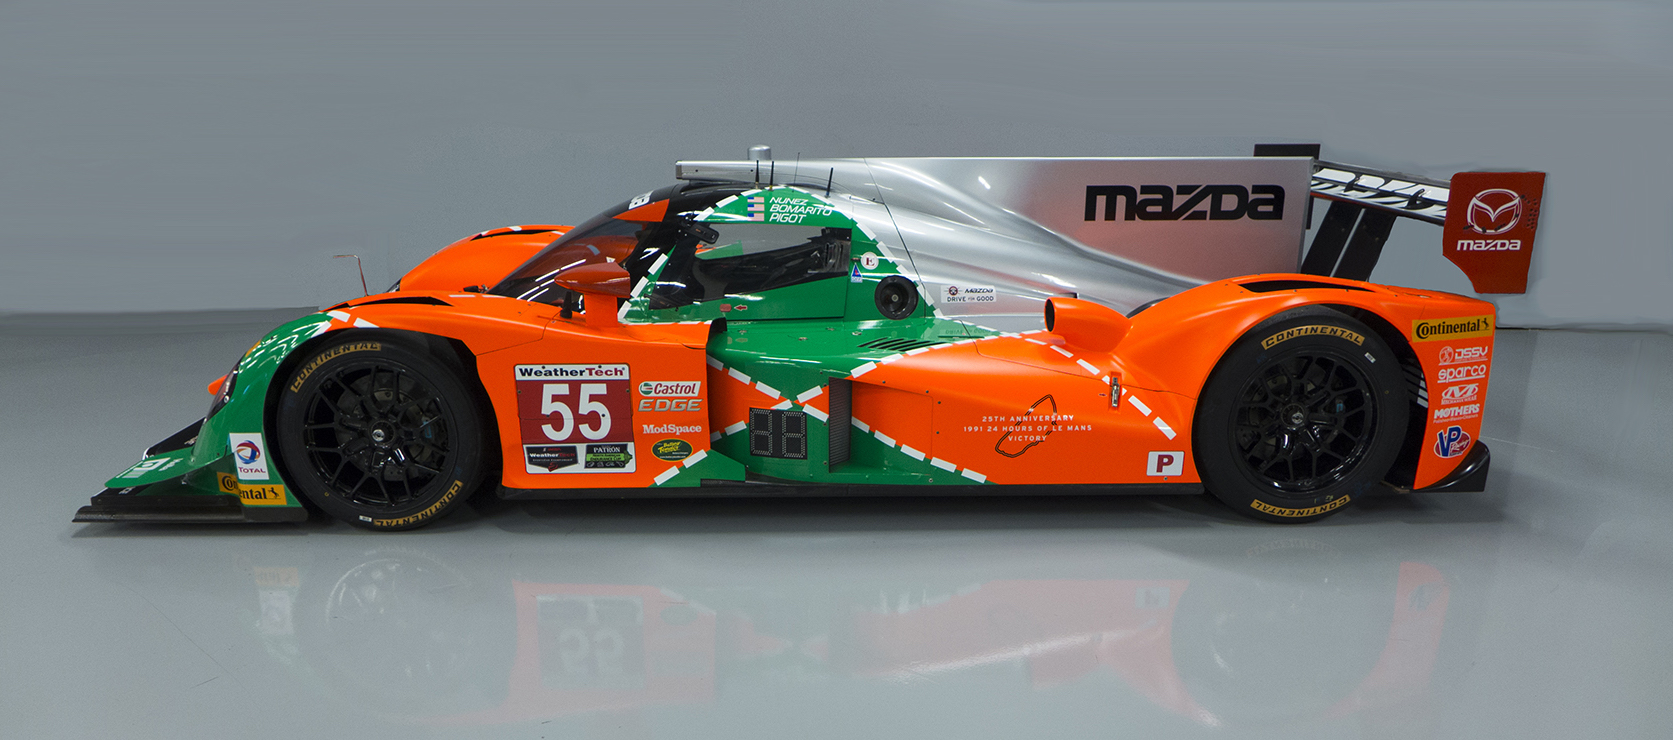 Mazda Prototypes to Carry Tribute to Le Mans Victory - Inside Mazda